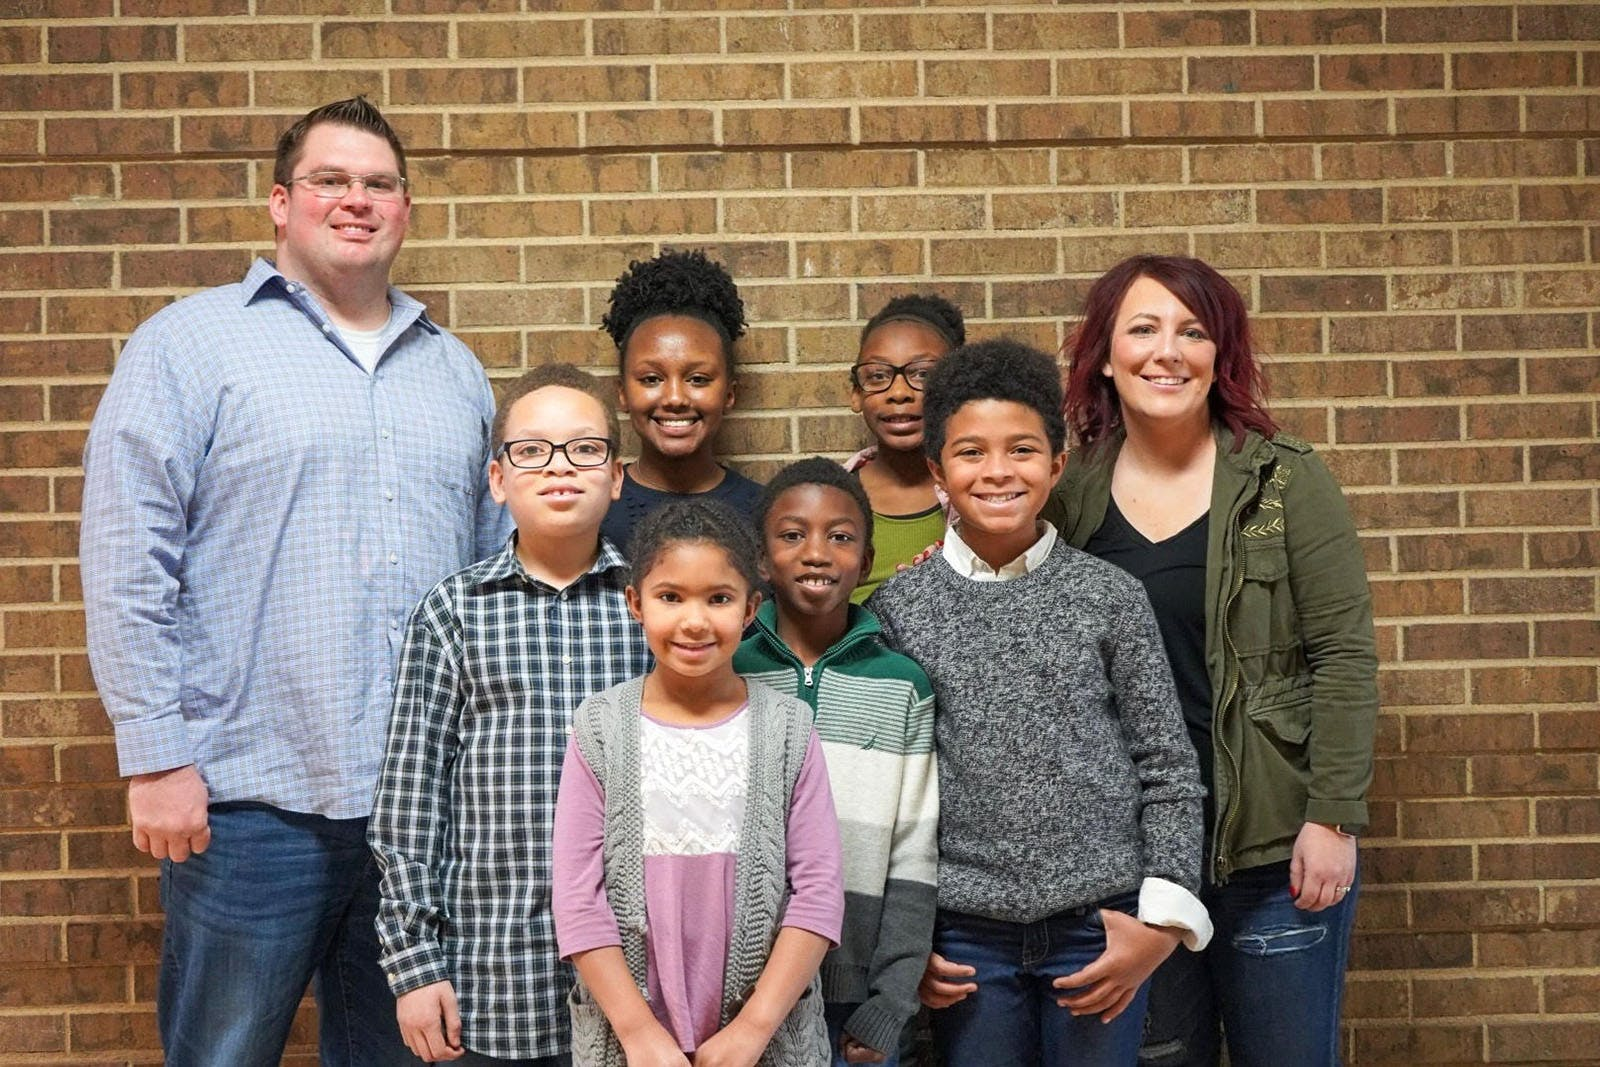 Lucy Swanson poses for a picture with her family. Swanson graduated from Bethel's College of Arts and Sciences and Bethel Seminary.